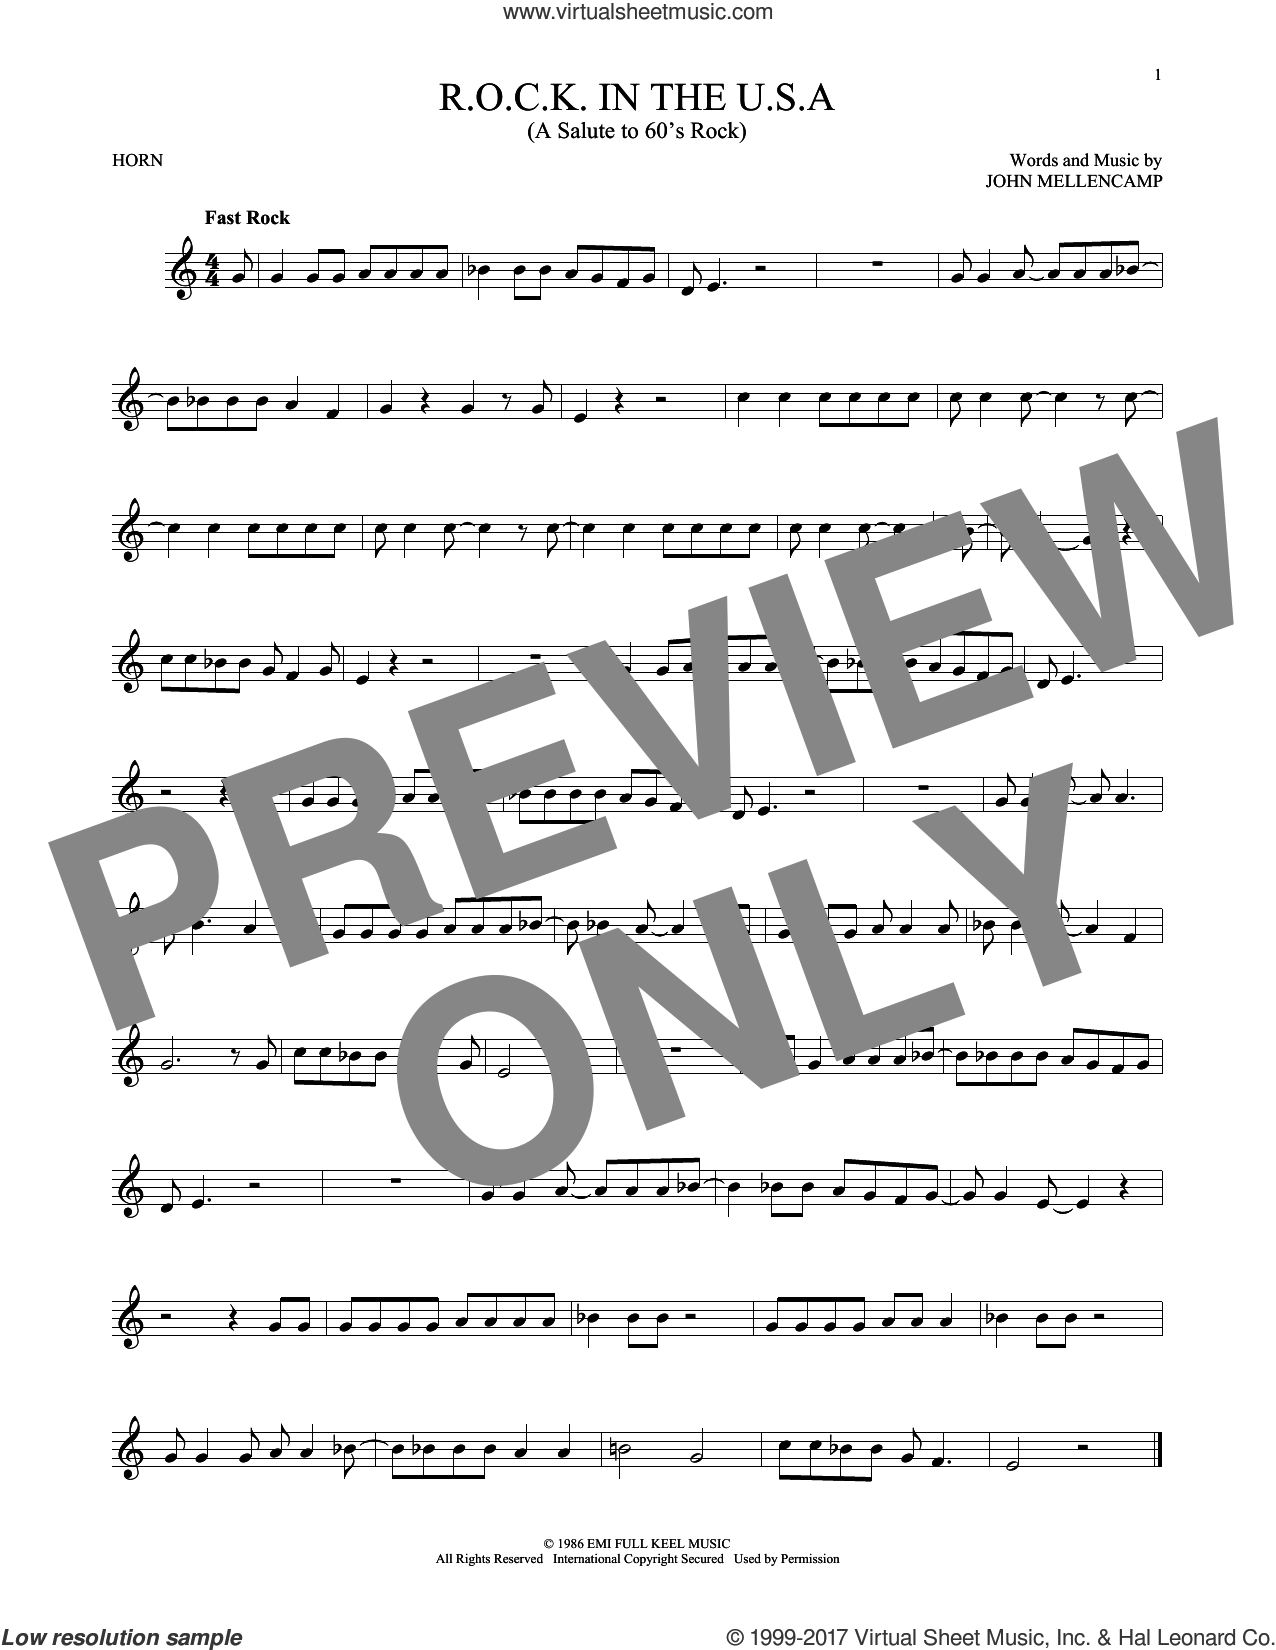 R.O.C.K. In The U.S.A. (A Salute To 60's Rock) sheet music for horn solo by John Mellencamp, intermediate skill level